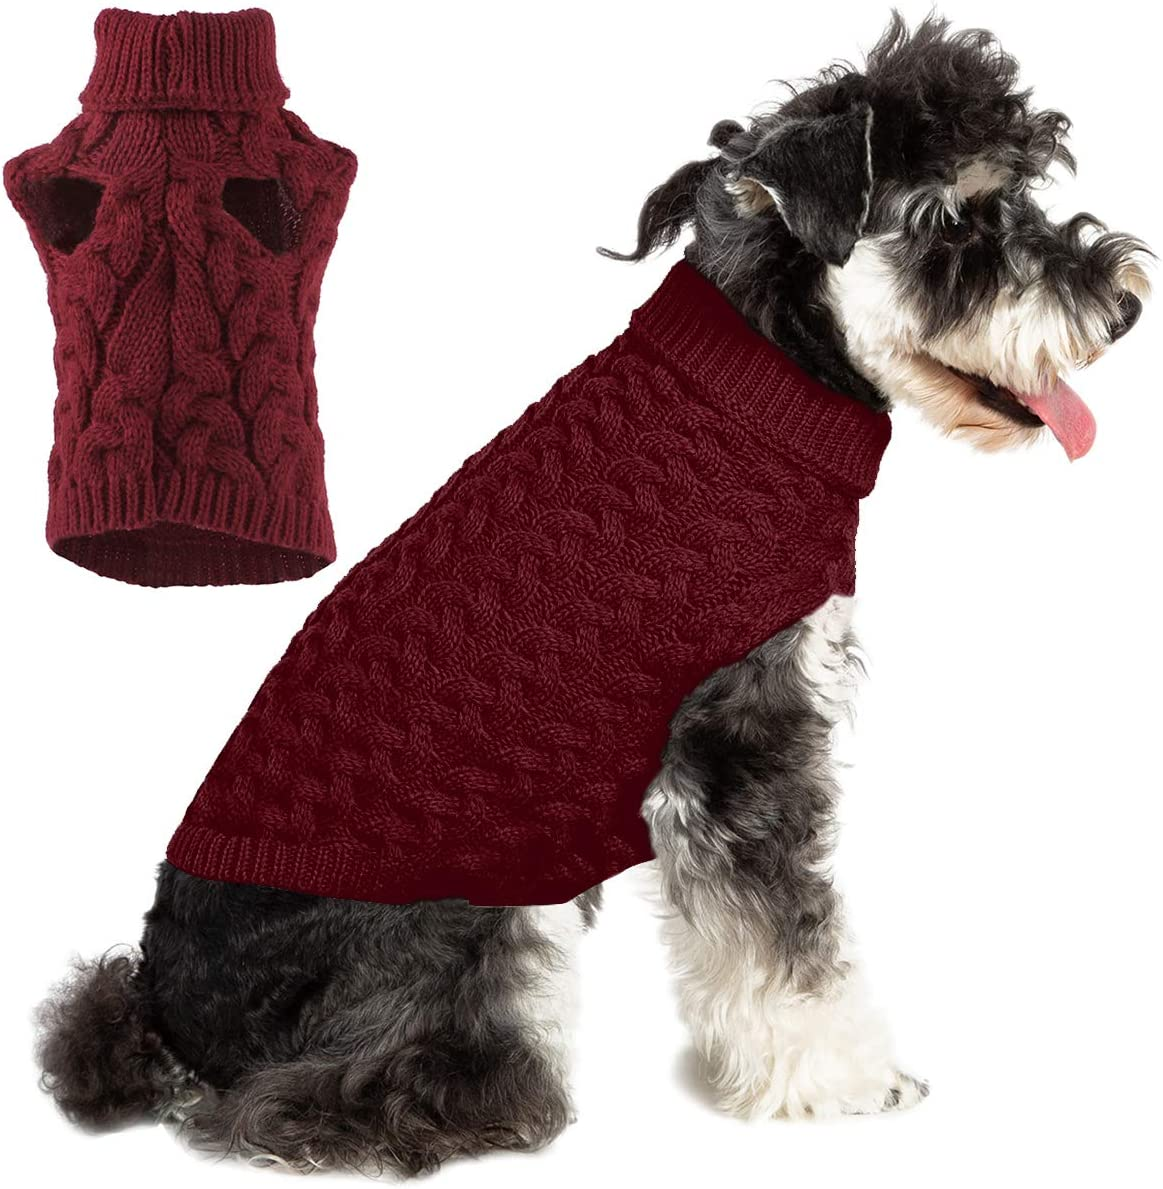 Dog Knitting Sweater Puppy SALENEW very popular Classic Warm High quality new Cable Soft Knit Clothes